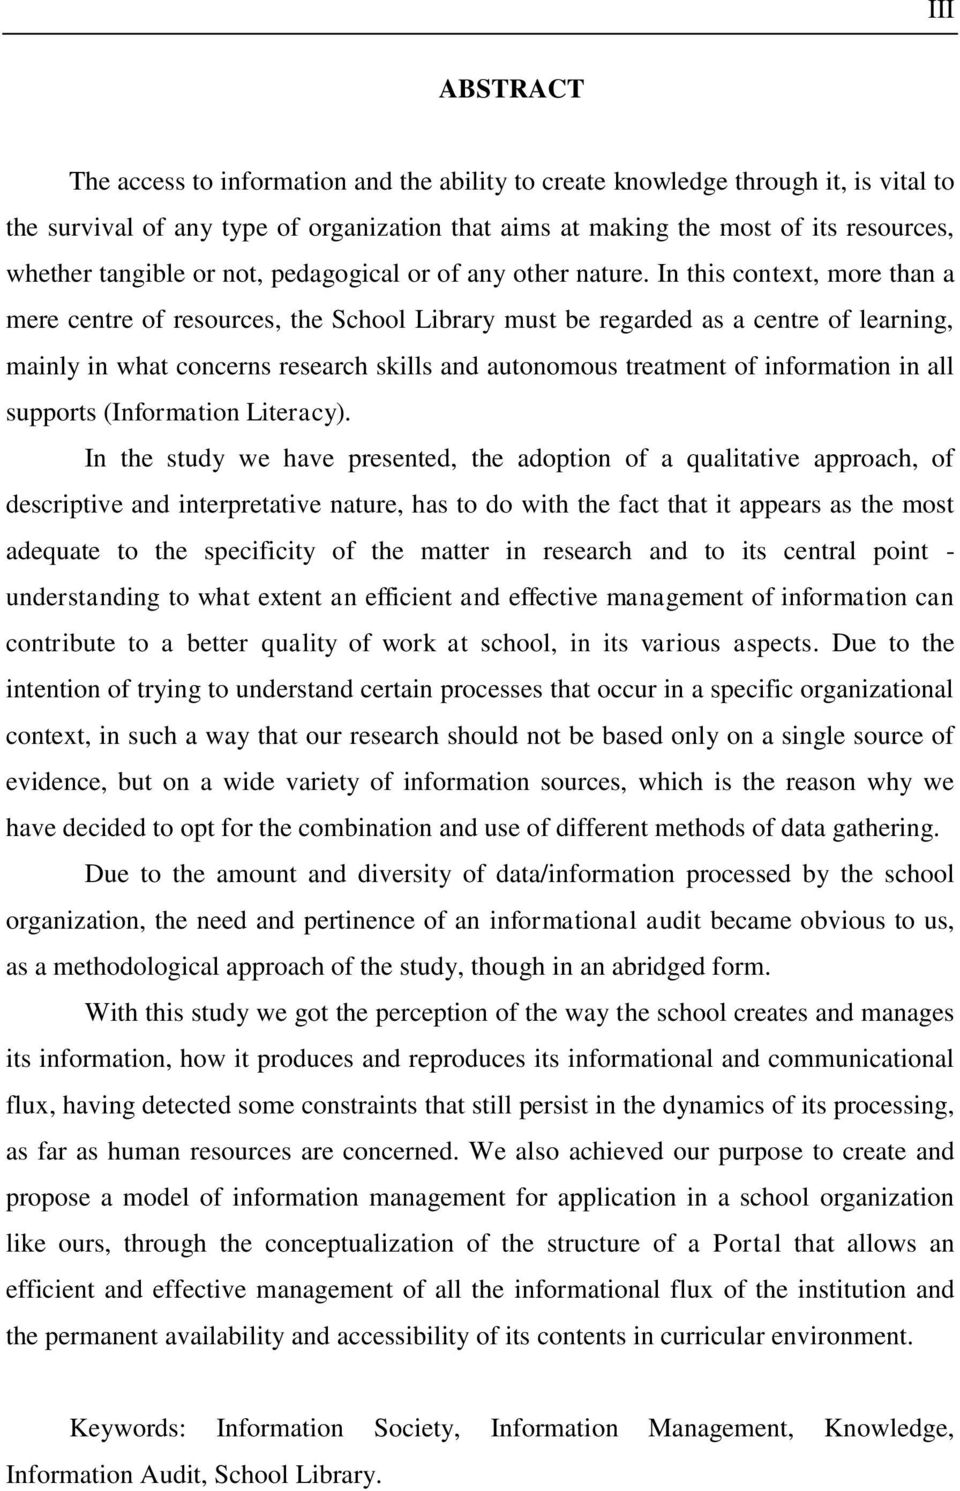 In this context, more than a mere centre of resources, the School Library must be regarded as a centre of learning, mainly in what concerns research skills and autonomous treatment of information in